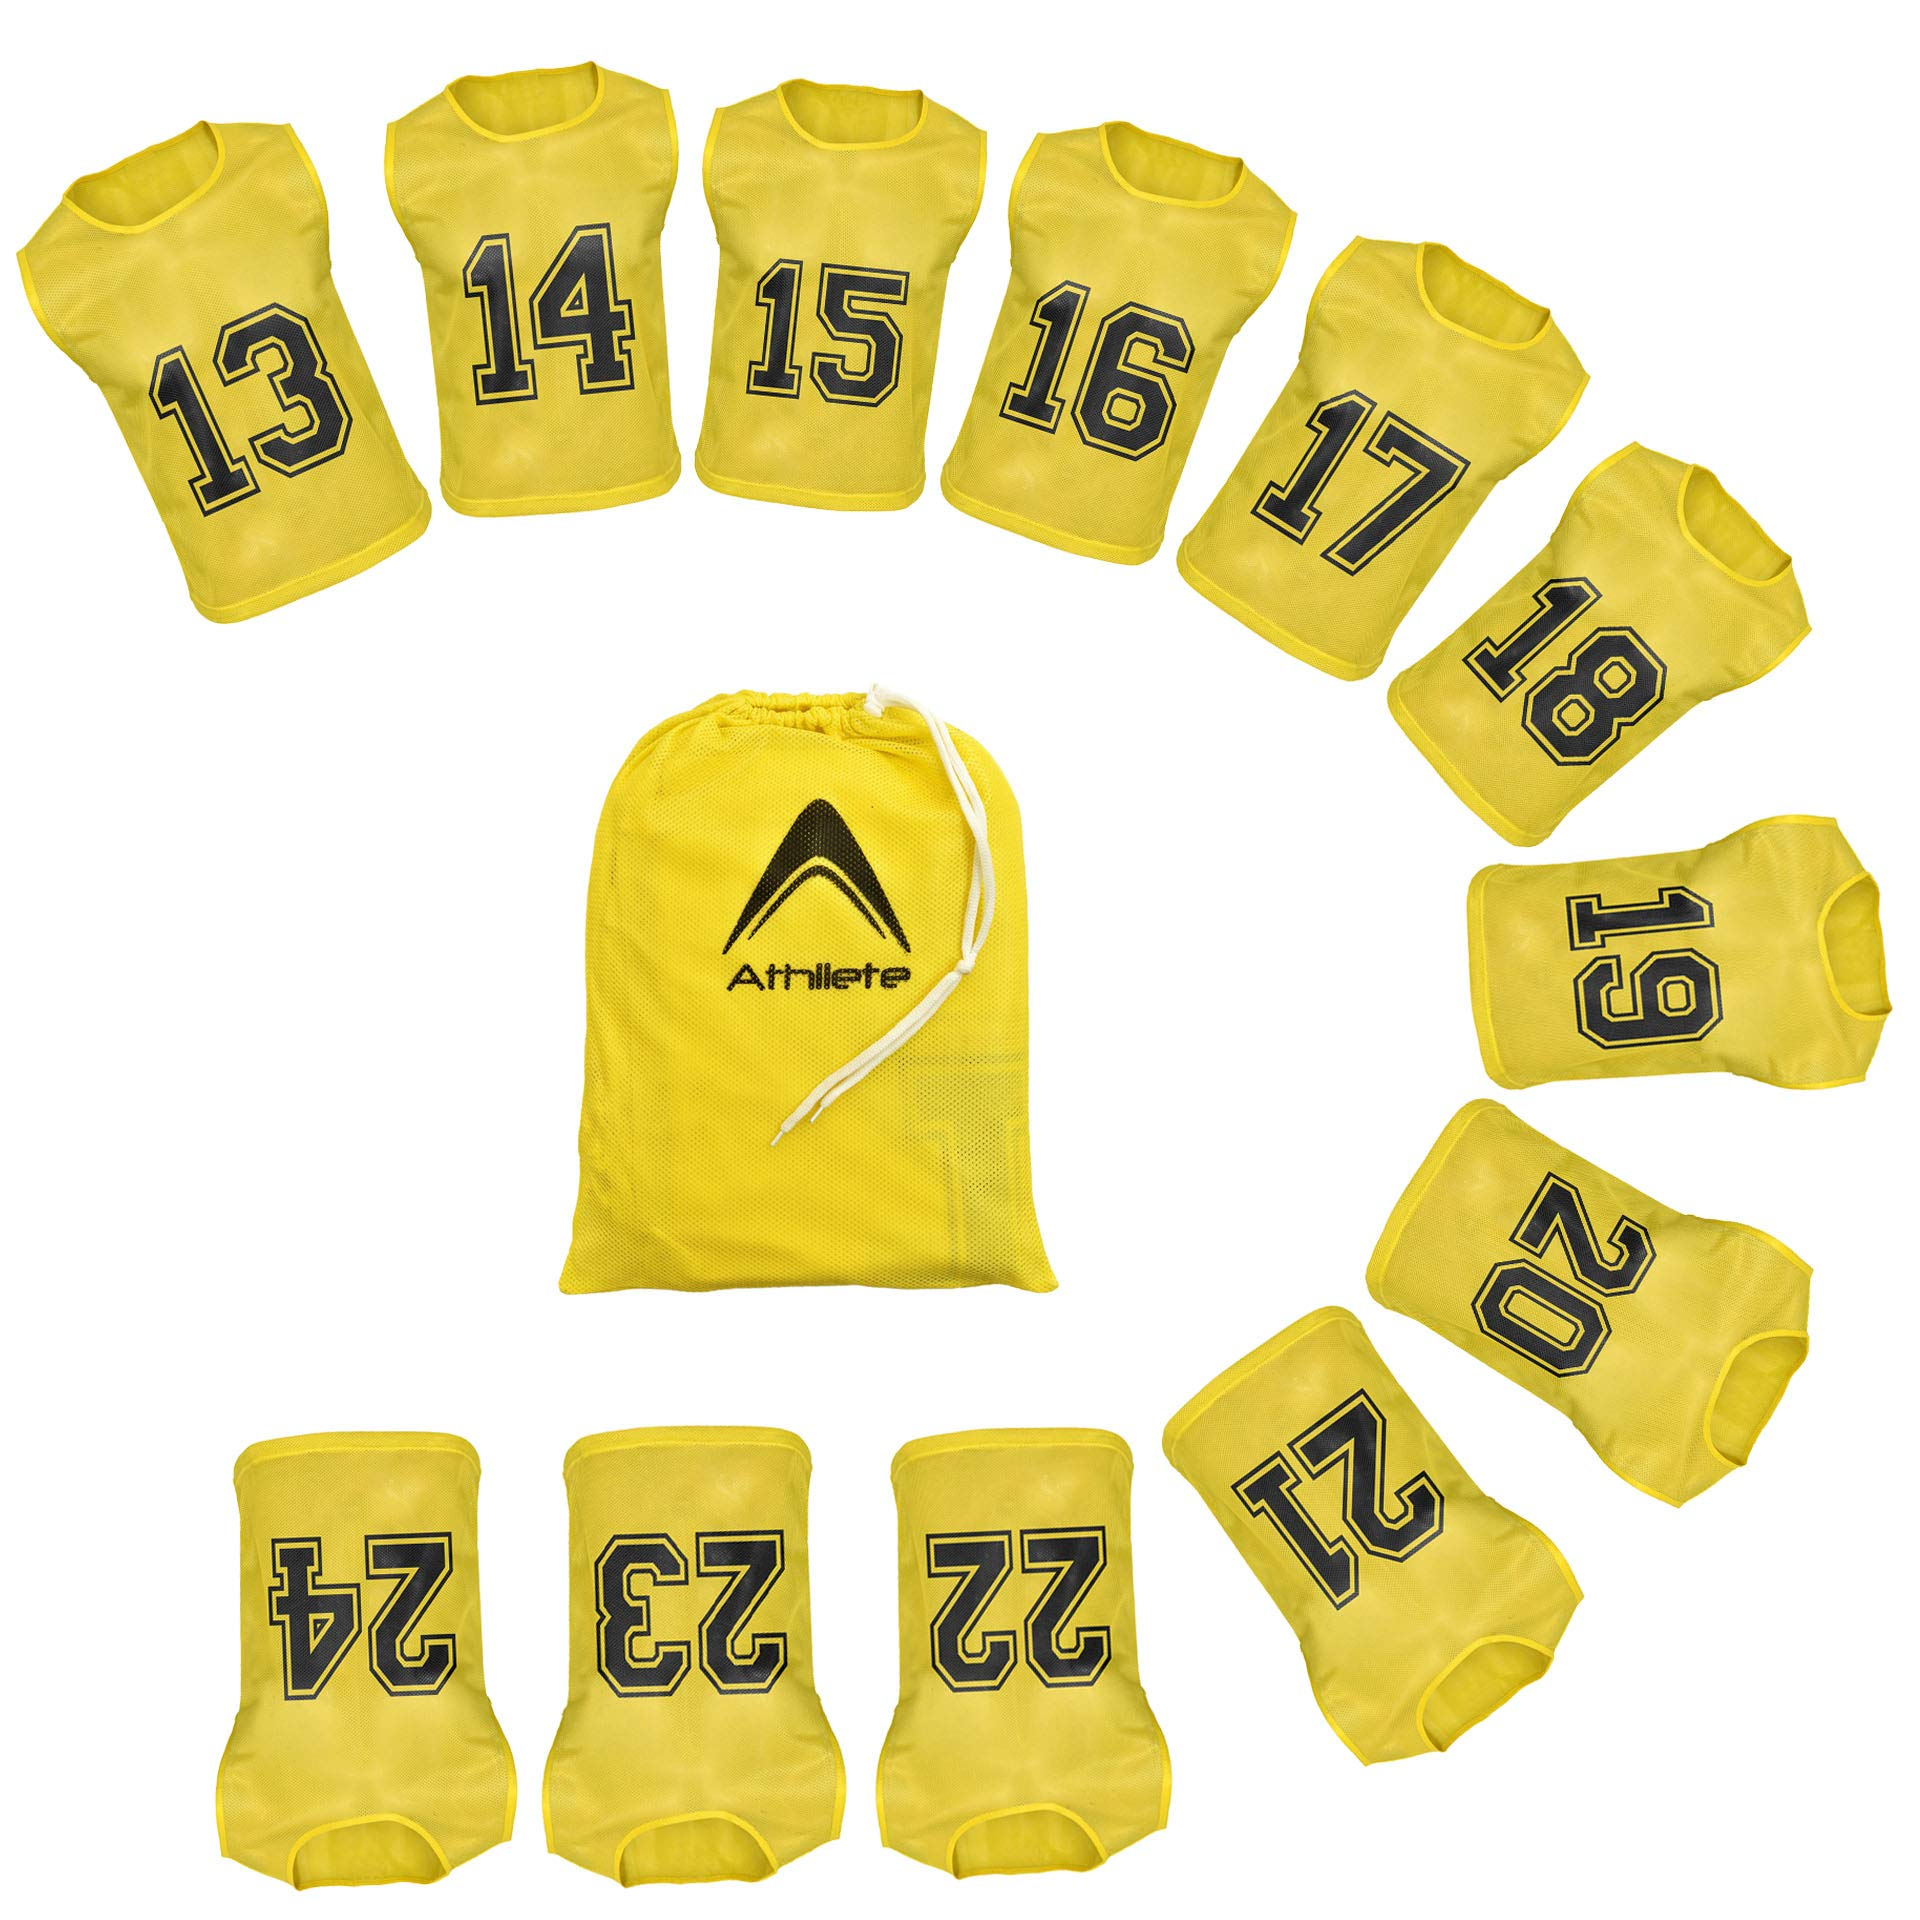 Athllete Set of 12 - Scrimmage Vest/Pinnies/Team Practice Jerseys with Free Carry Bag. Sizes for Children Youth Adult and Adult XL (Golden Yellow Numbered, Medium) by Athllete